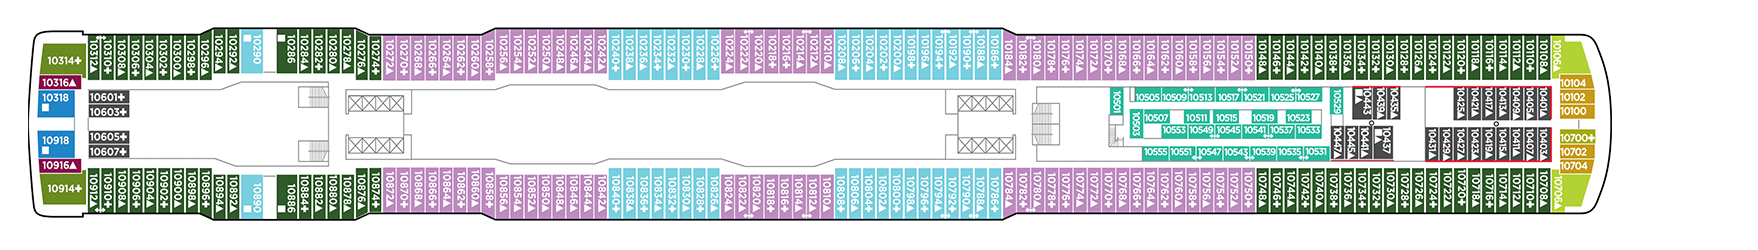 Norwegian Cruise Line Norwegian Escape Deck Plans Deck 10.png